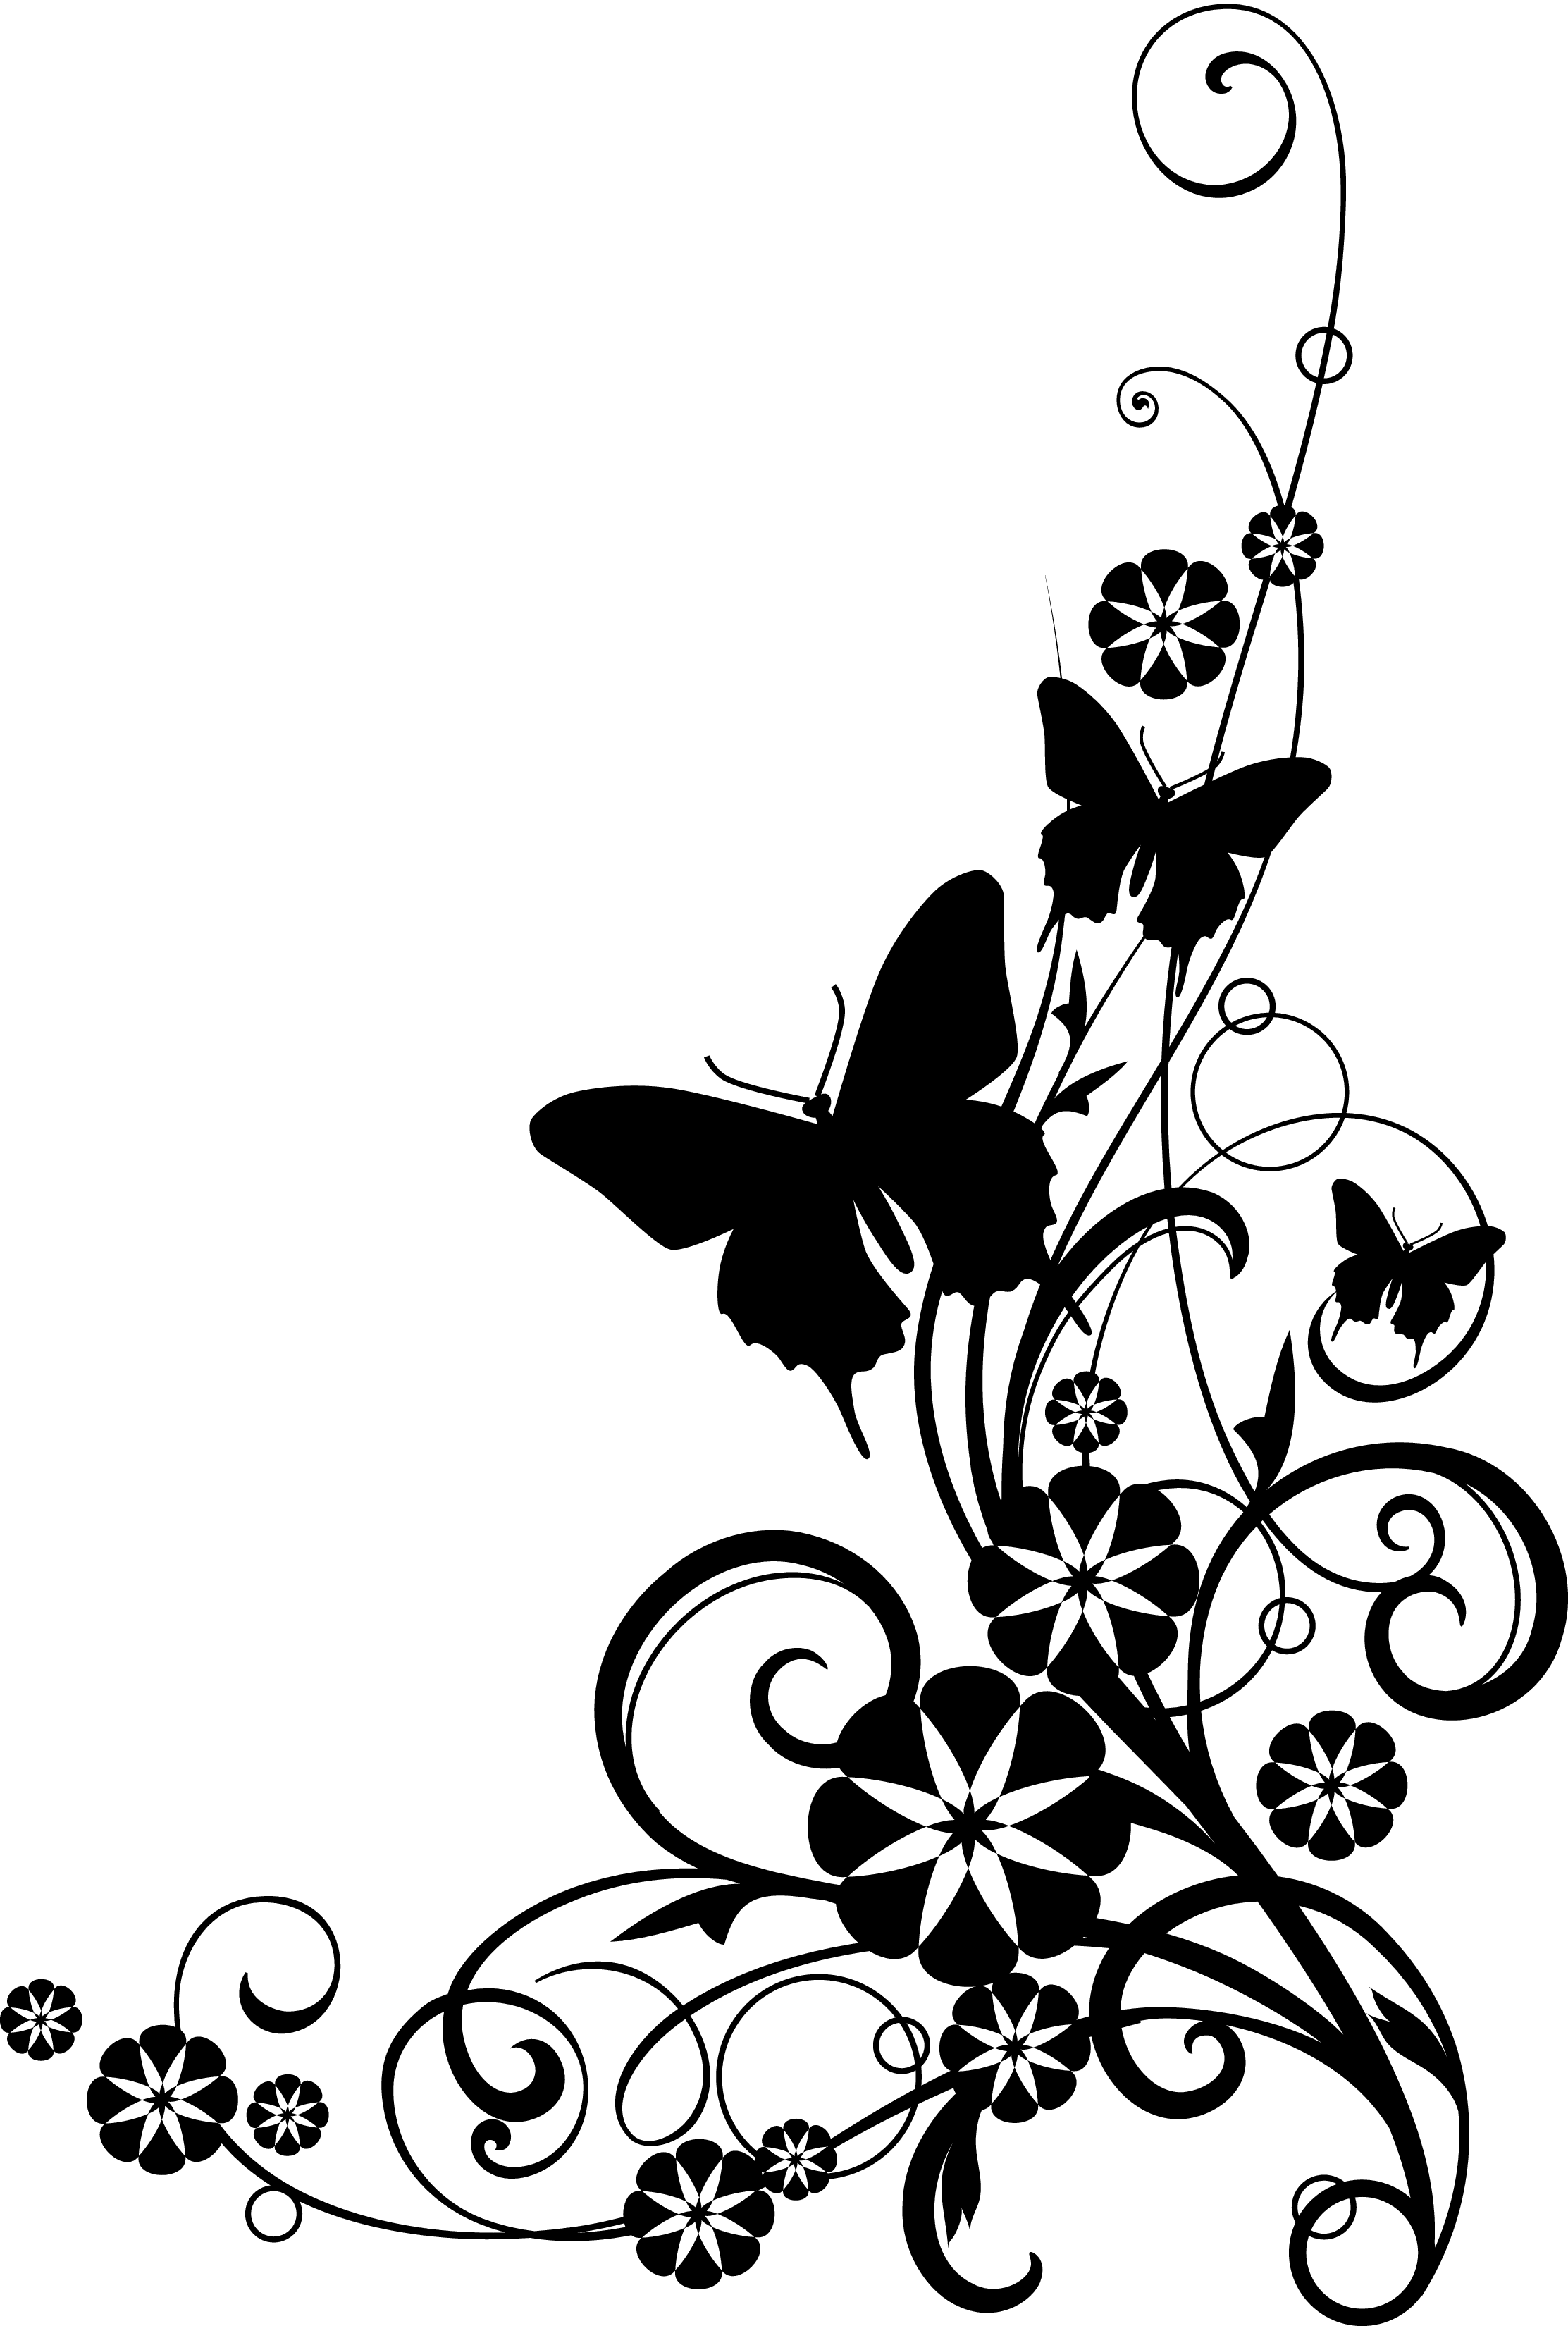 Cross clipart with flowers picture library download 8c59ec4066e54d3f207a7d2aa92e8274_vine-clipart-black-and-white ... picture library download